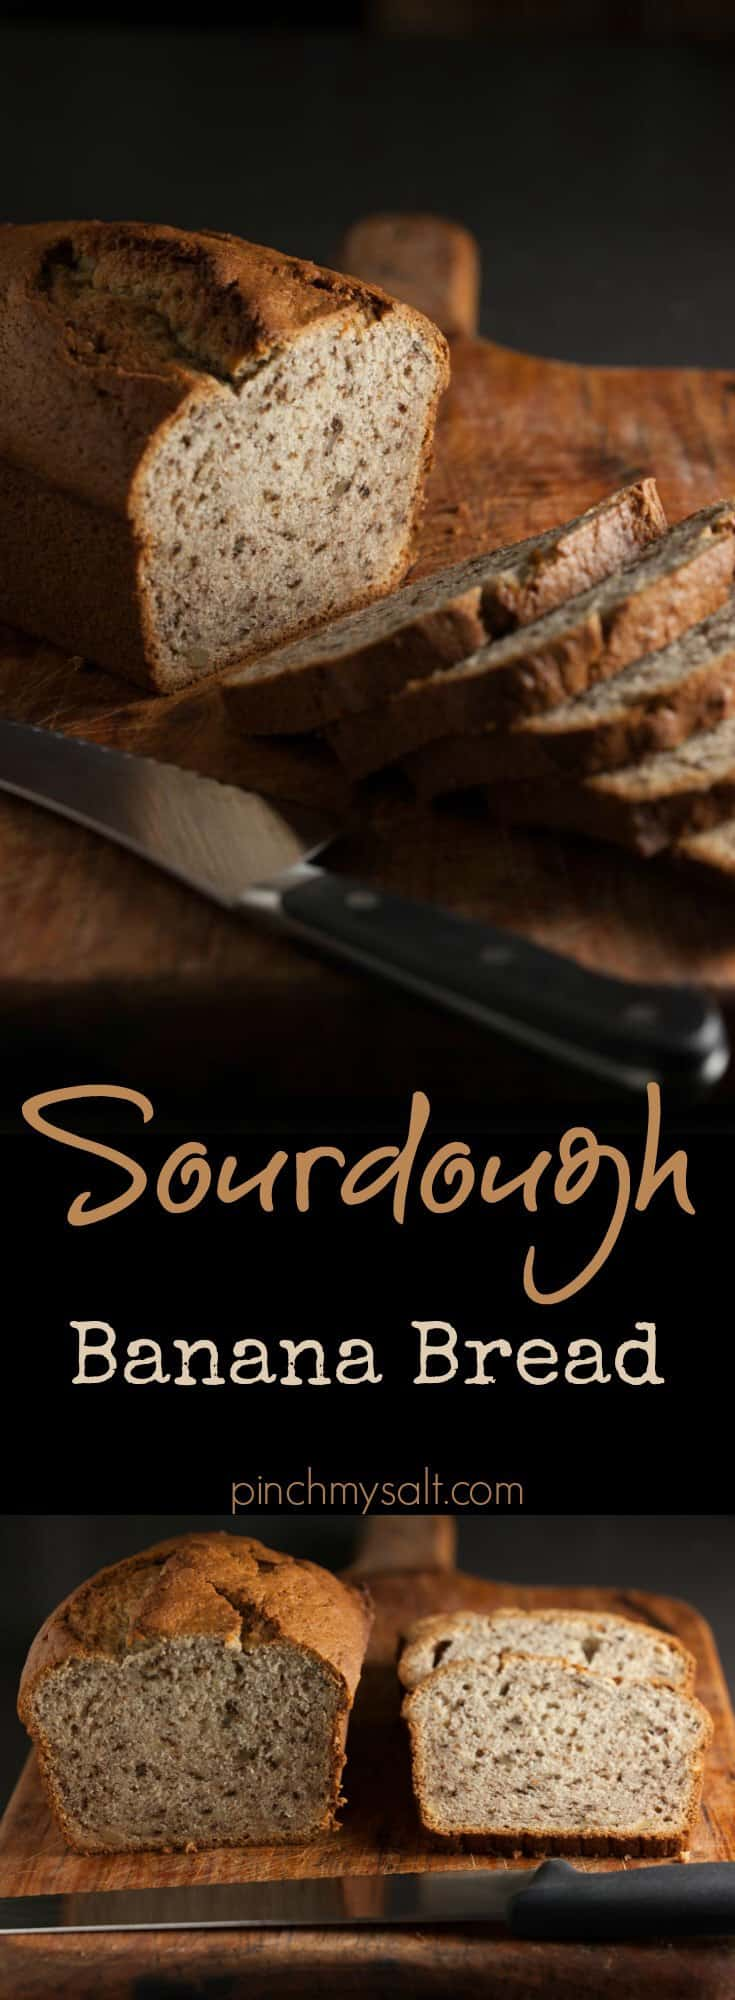 Sourdough banana bread recipe sourdough banana bread recipe pinchmysalt forumfinder